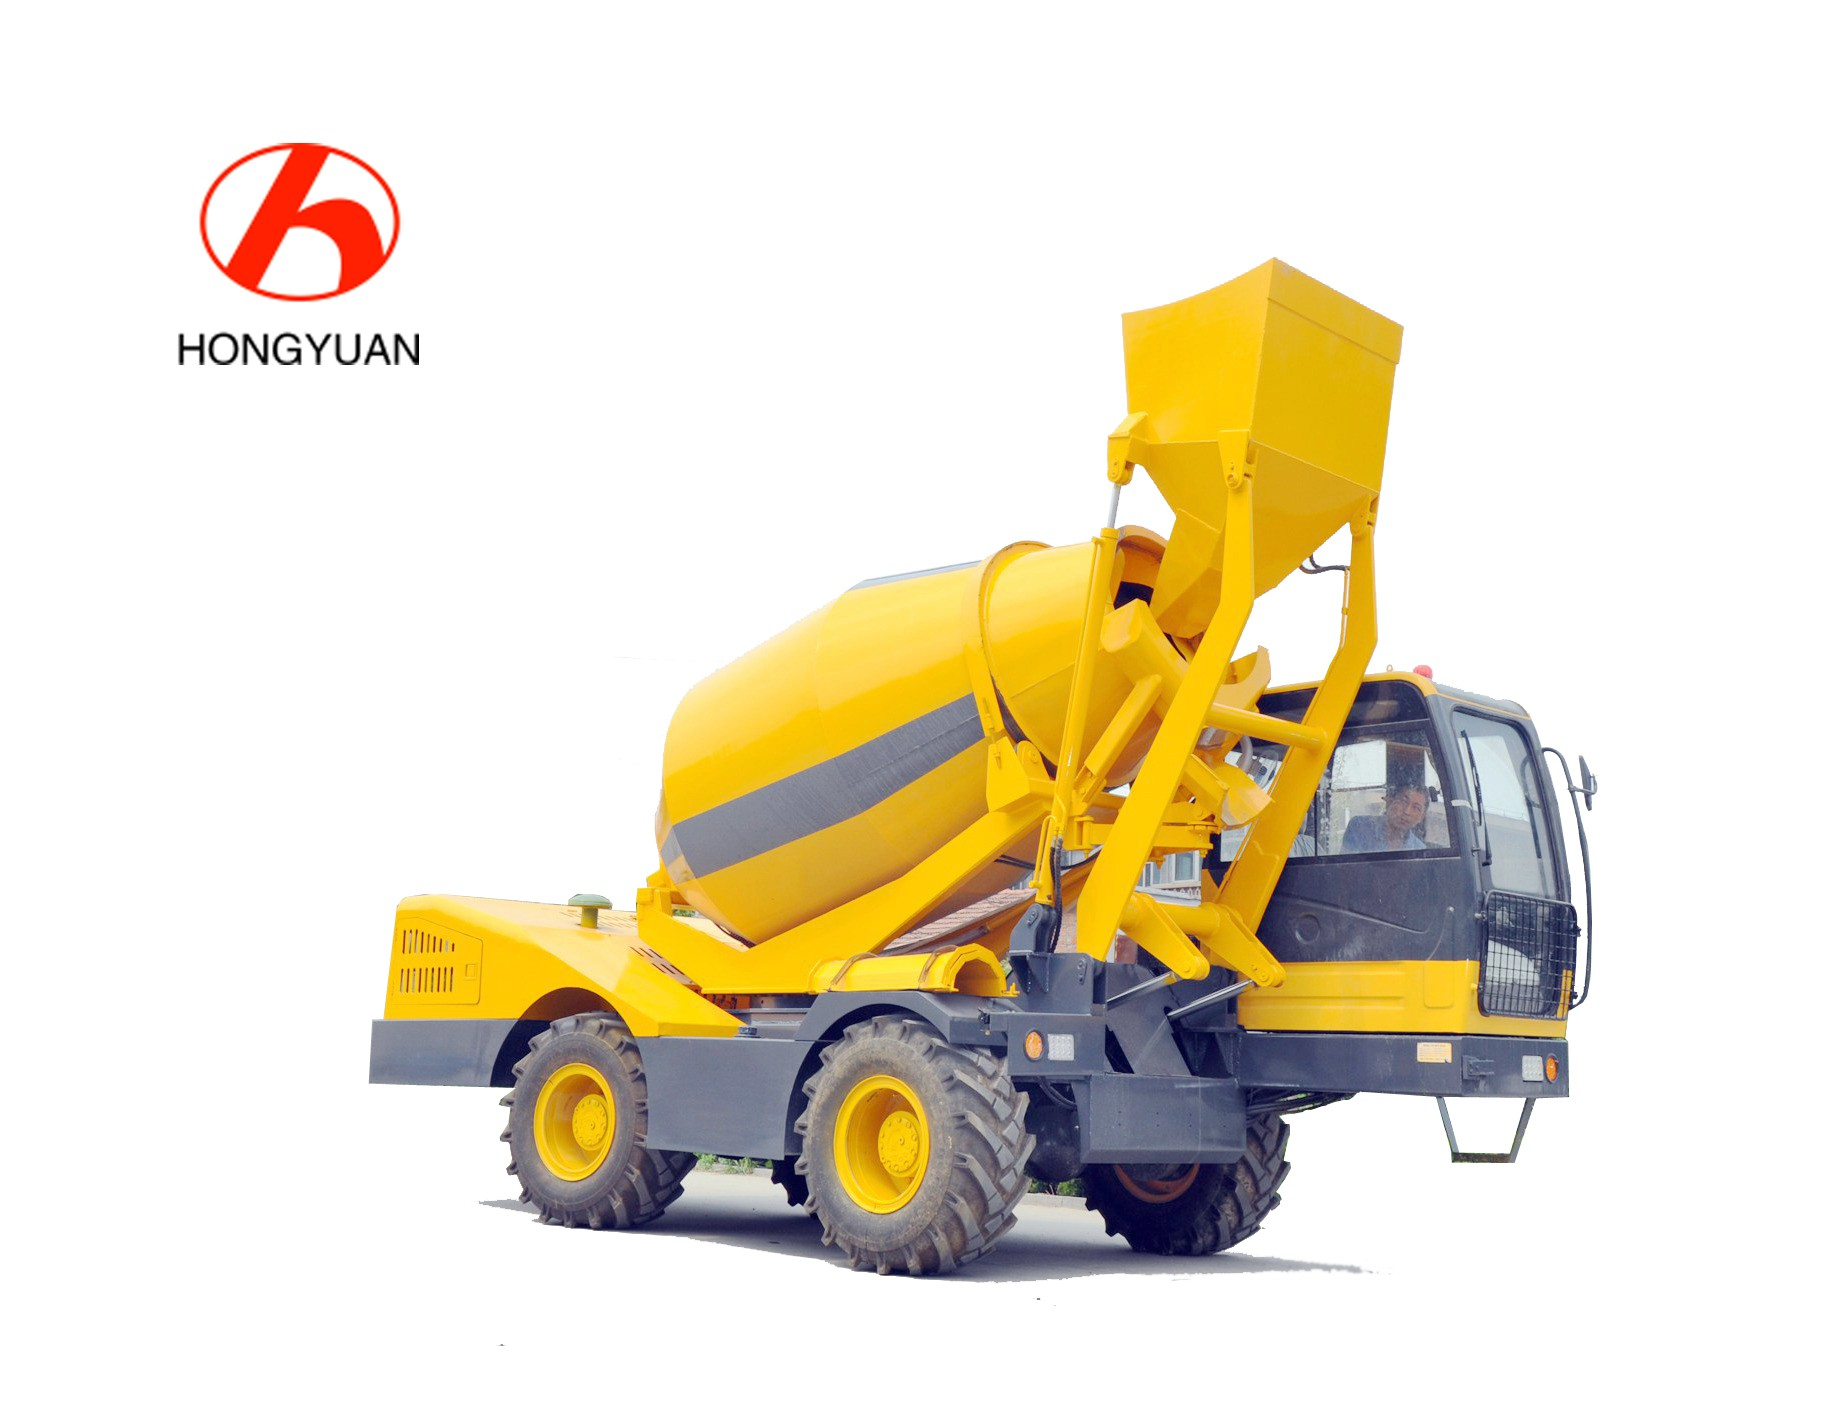 Sales Self Loading Transit Mixer Price, Buy Self Loading Transit Mixer Price, Self Loading Transit Mixer Price Factory, Self Loading Transit Mixer Price Brands